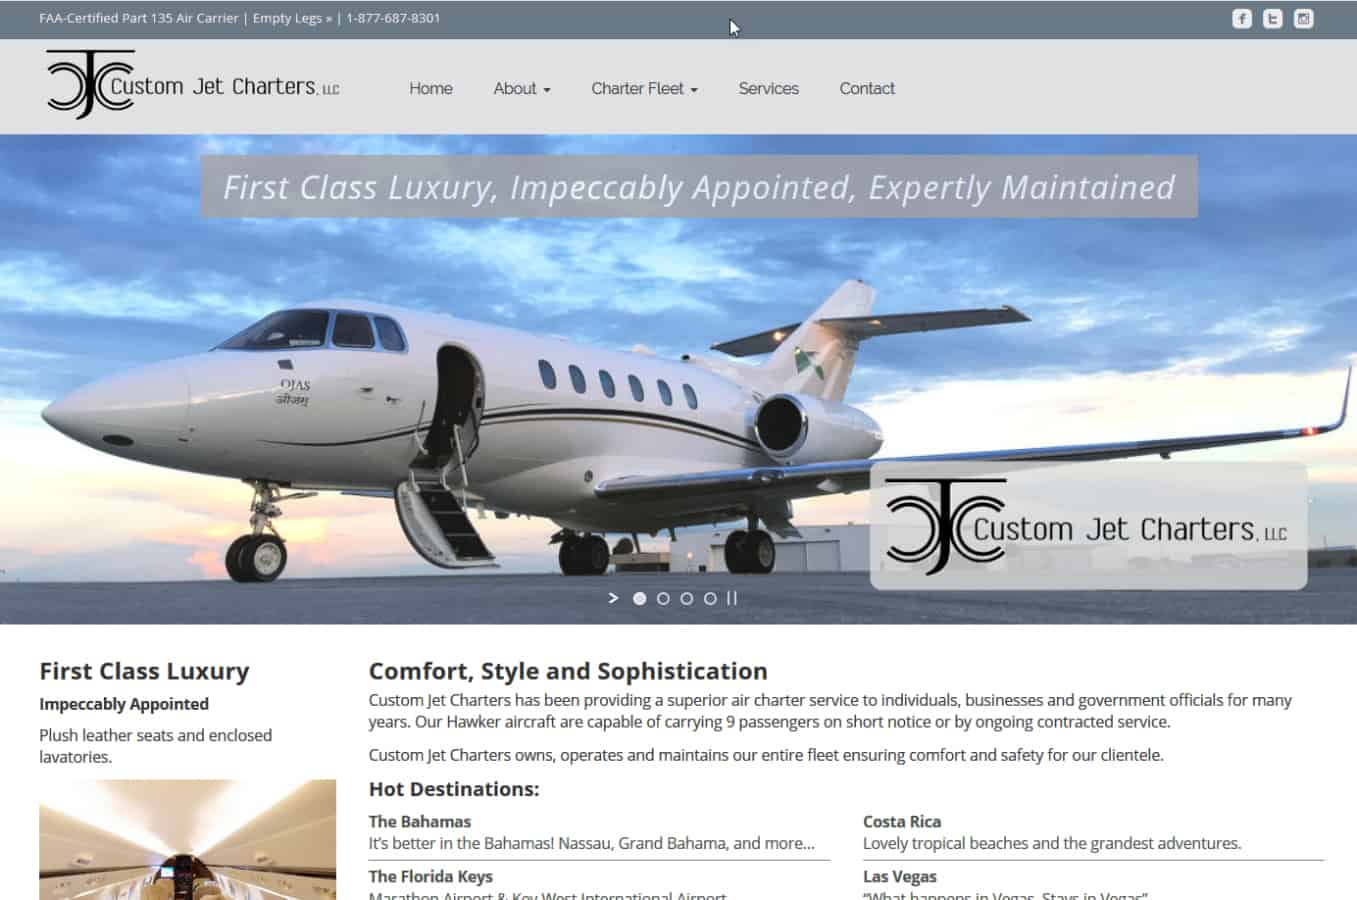 Custom Jet Charters West Palm Beach Website by iSatisfy.com